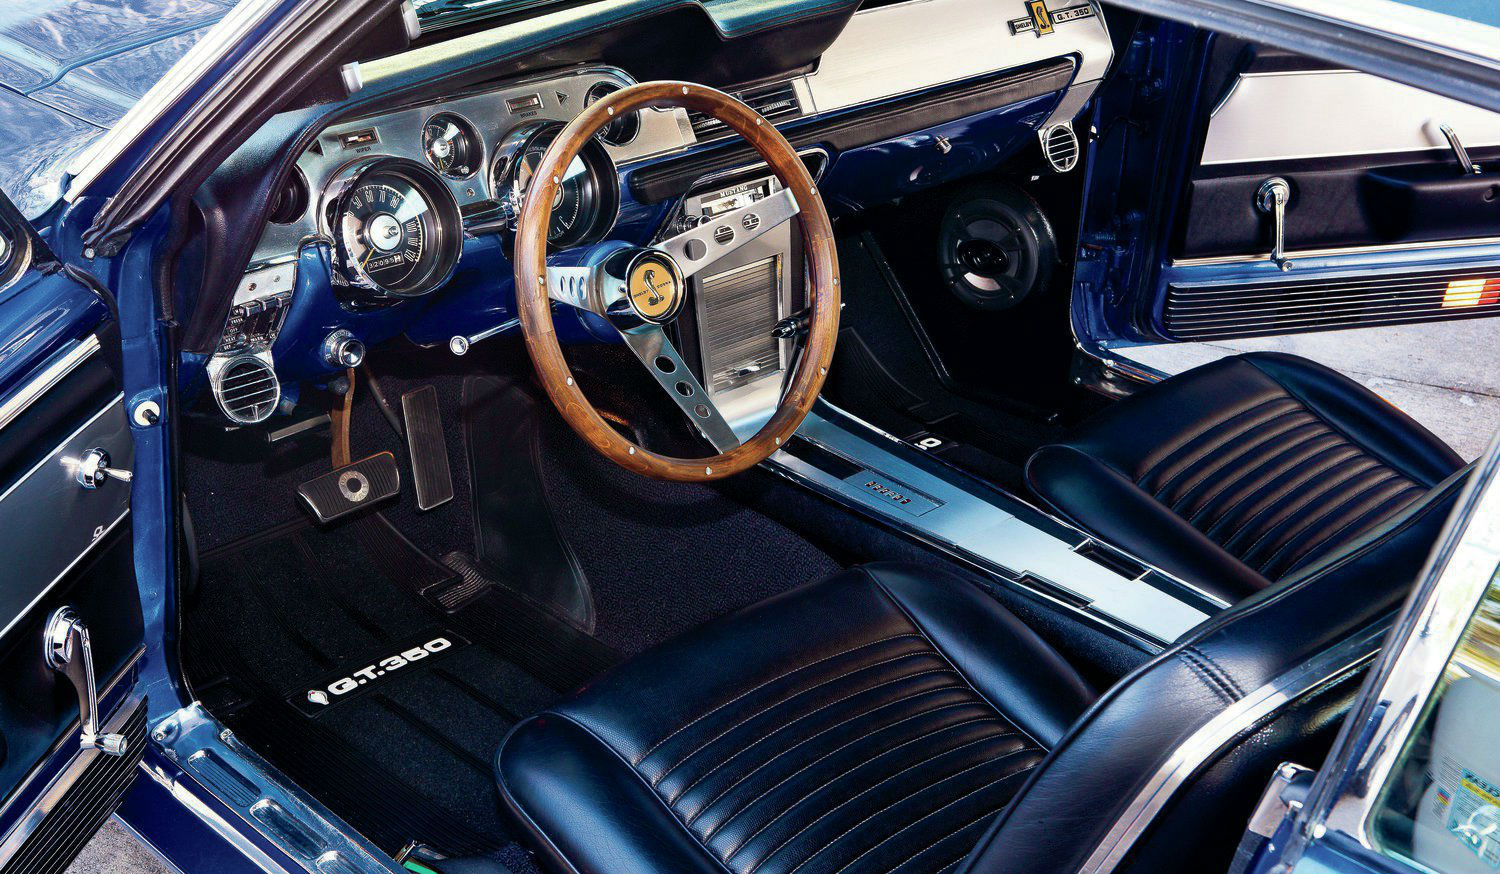 1967 ford mustang interior front seats